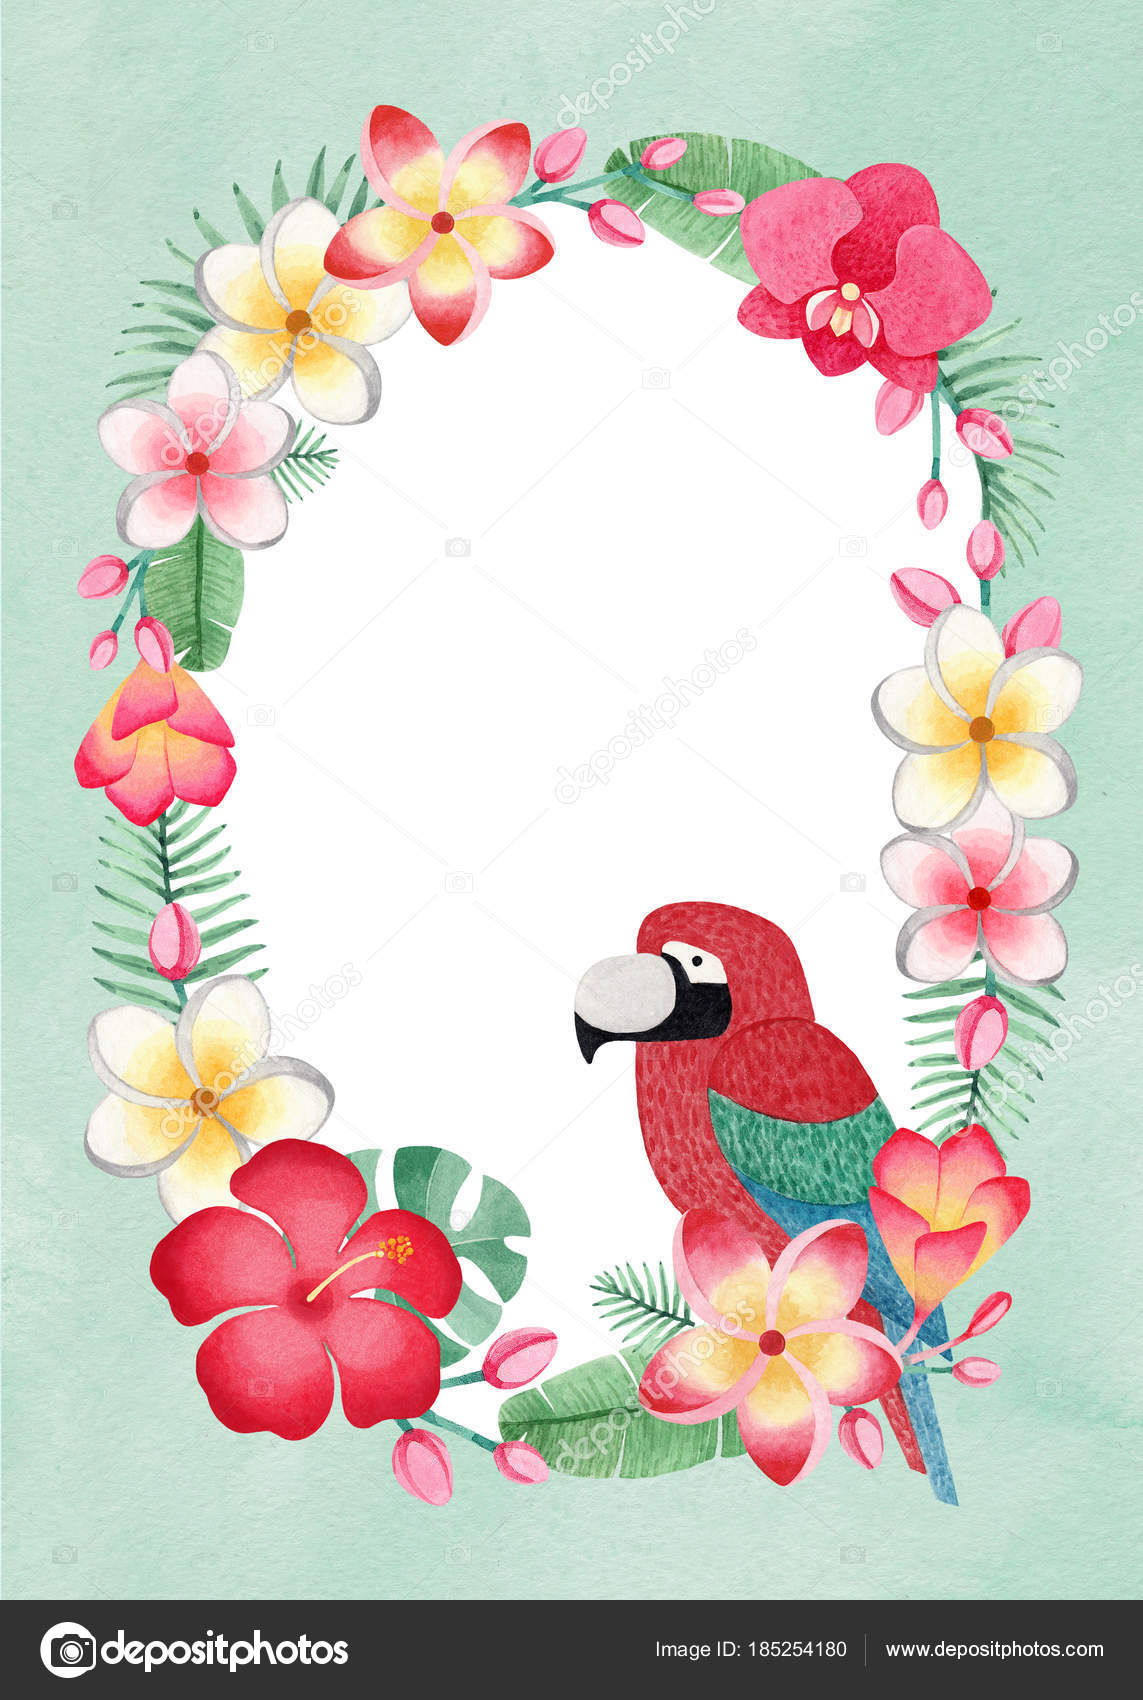 Watercolor tropical floral wreath parrot perfect greeting cards watercolor tropical floral wreath parrot perfect greeting cards invitations stock photo m4hsunfo